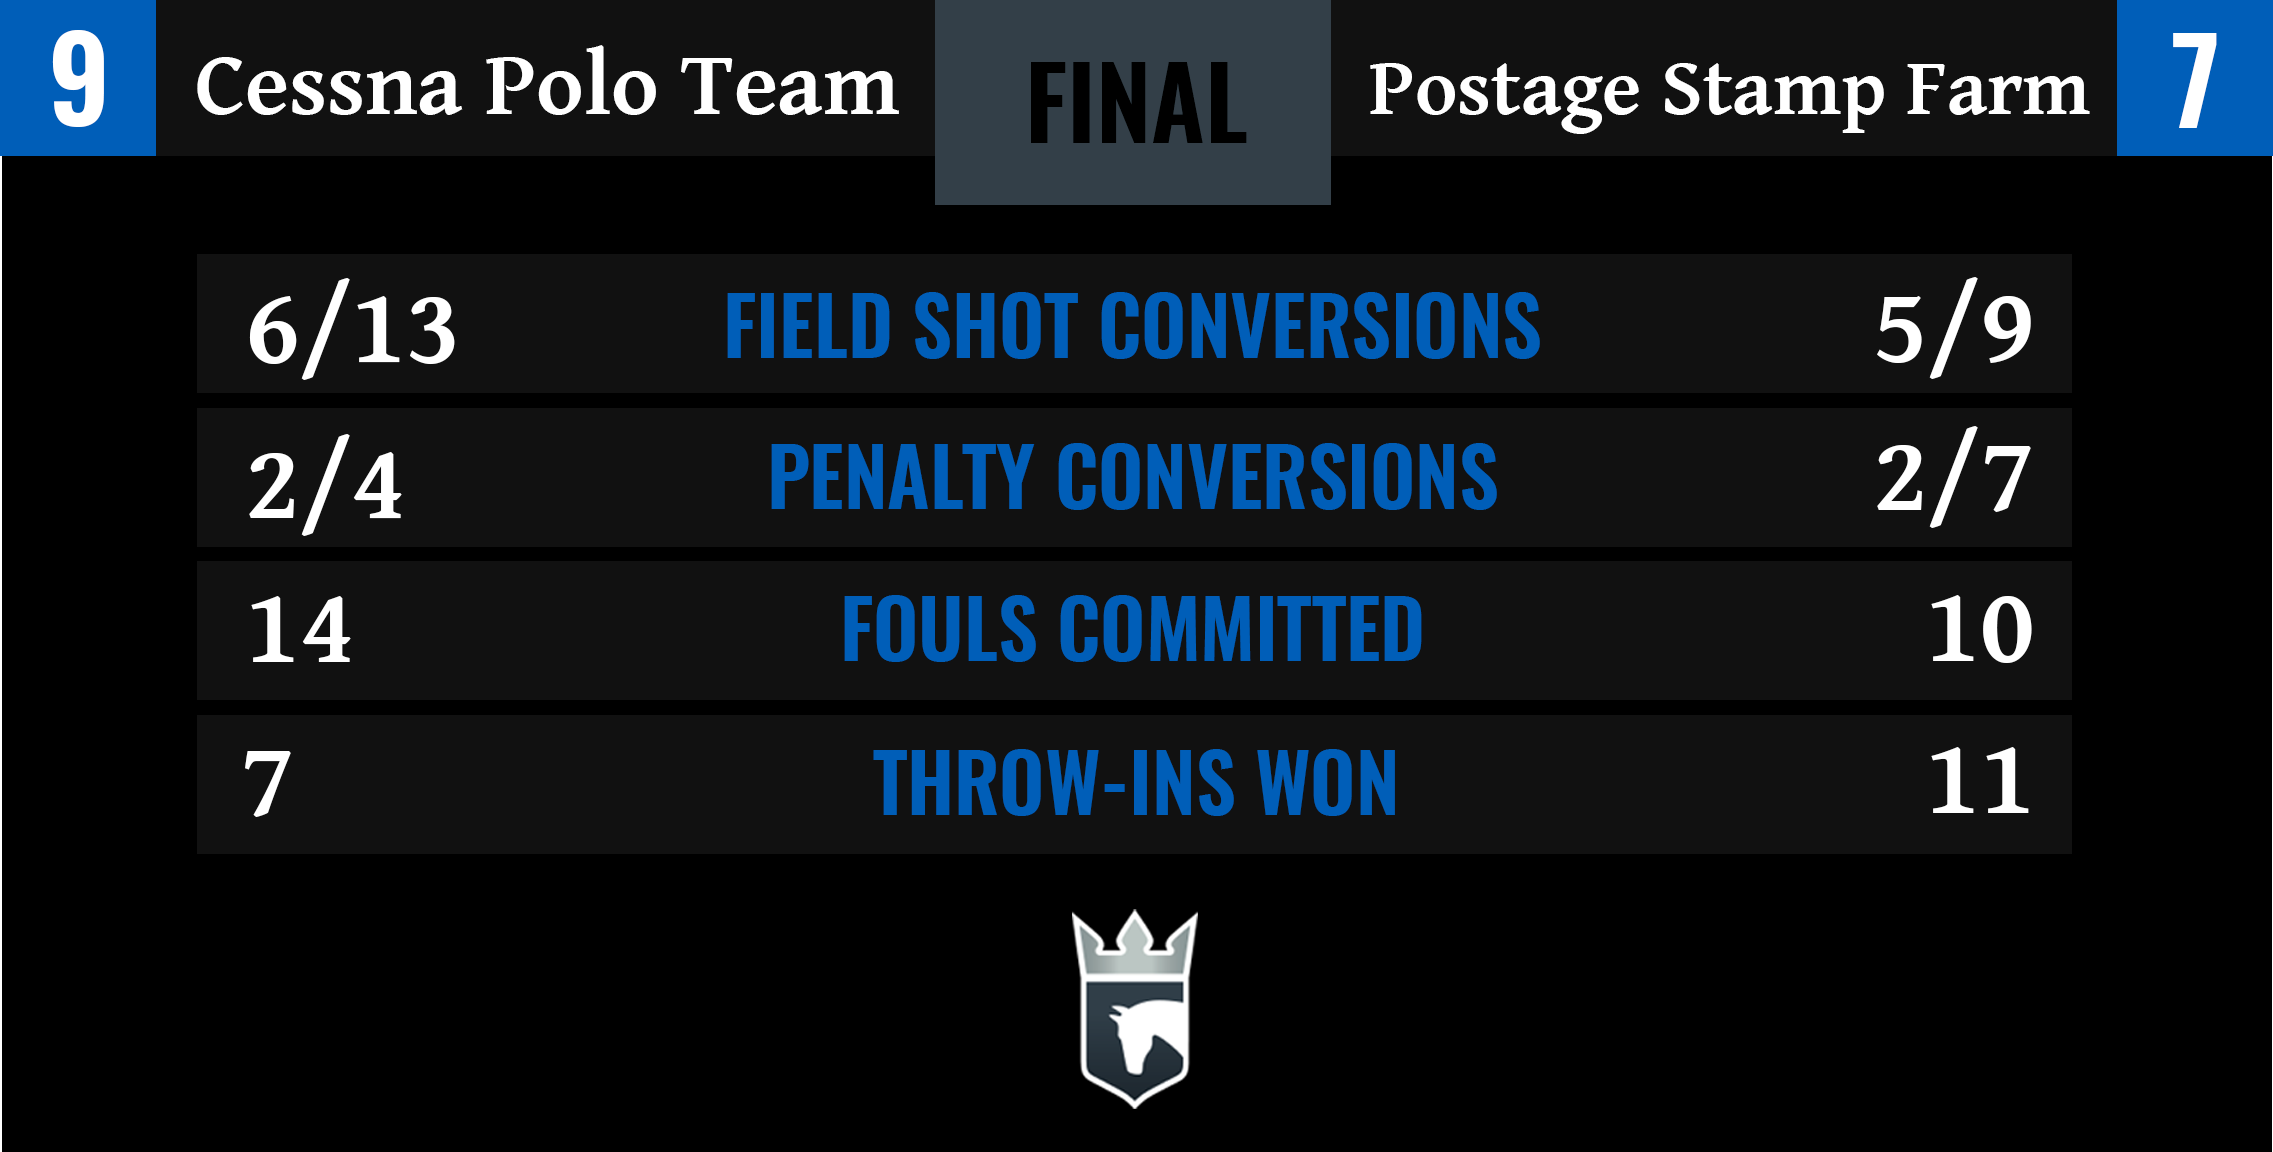 Cessna Polo Team vs Postage Stamp Farm Final Stats